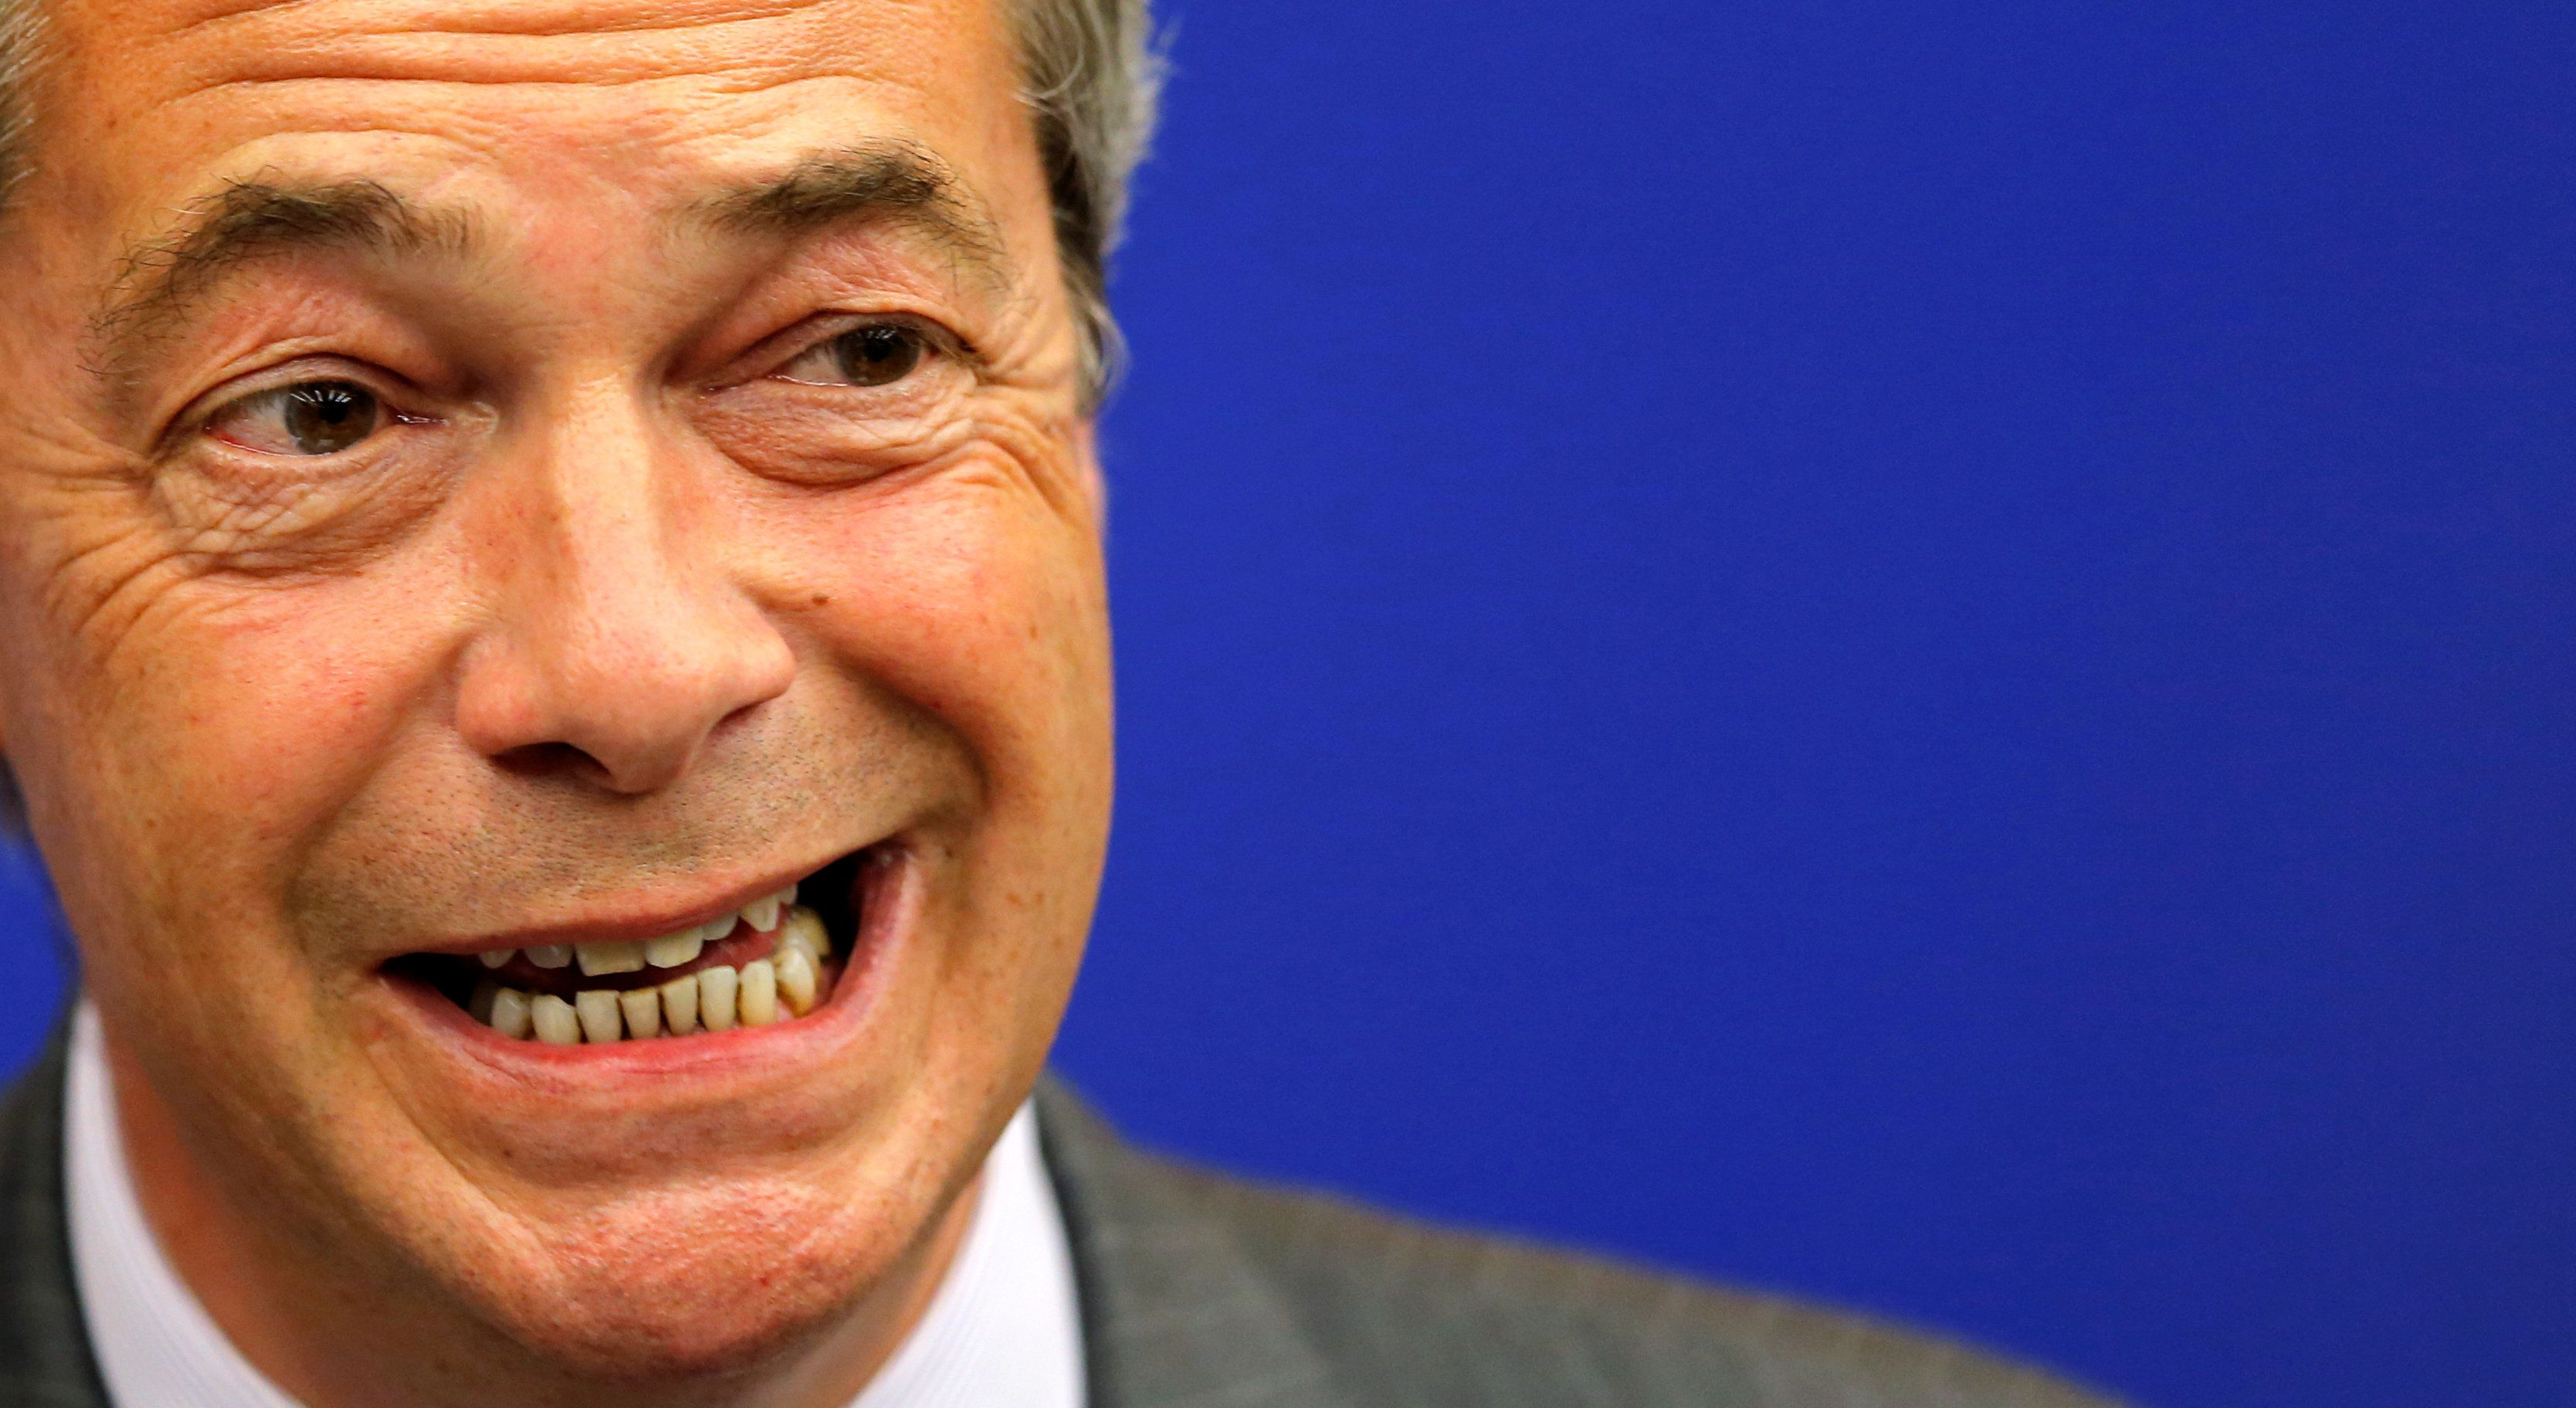 Nigel Farage 'Set To Make Reality TV Show